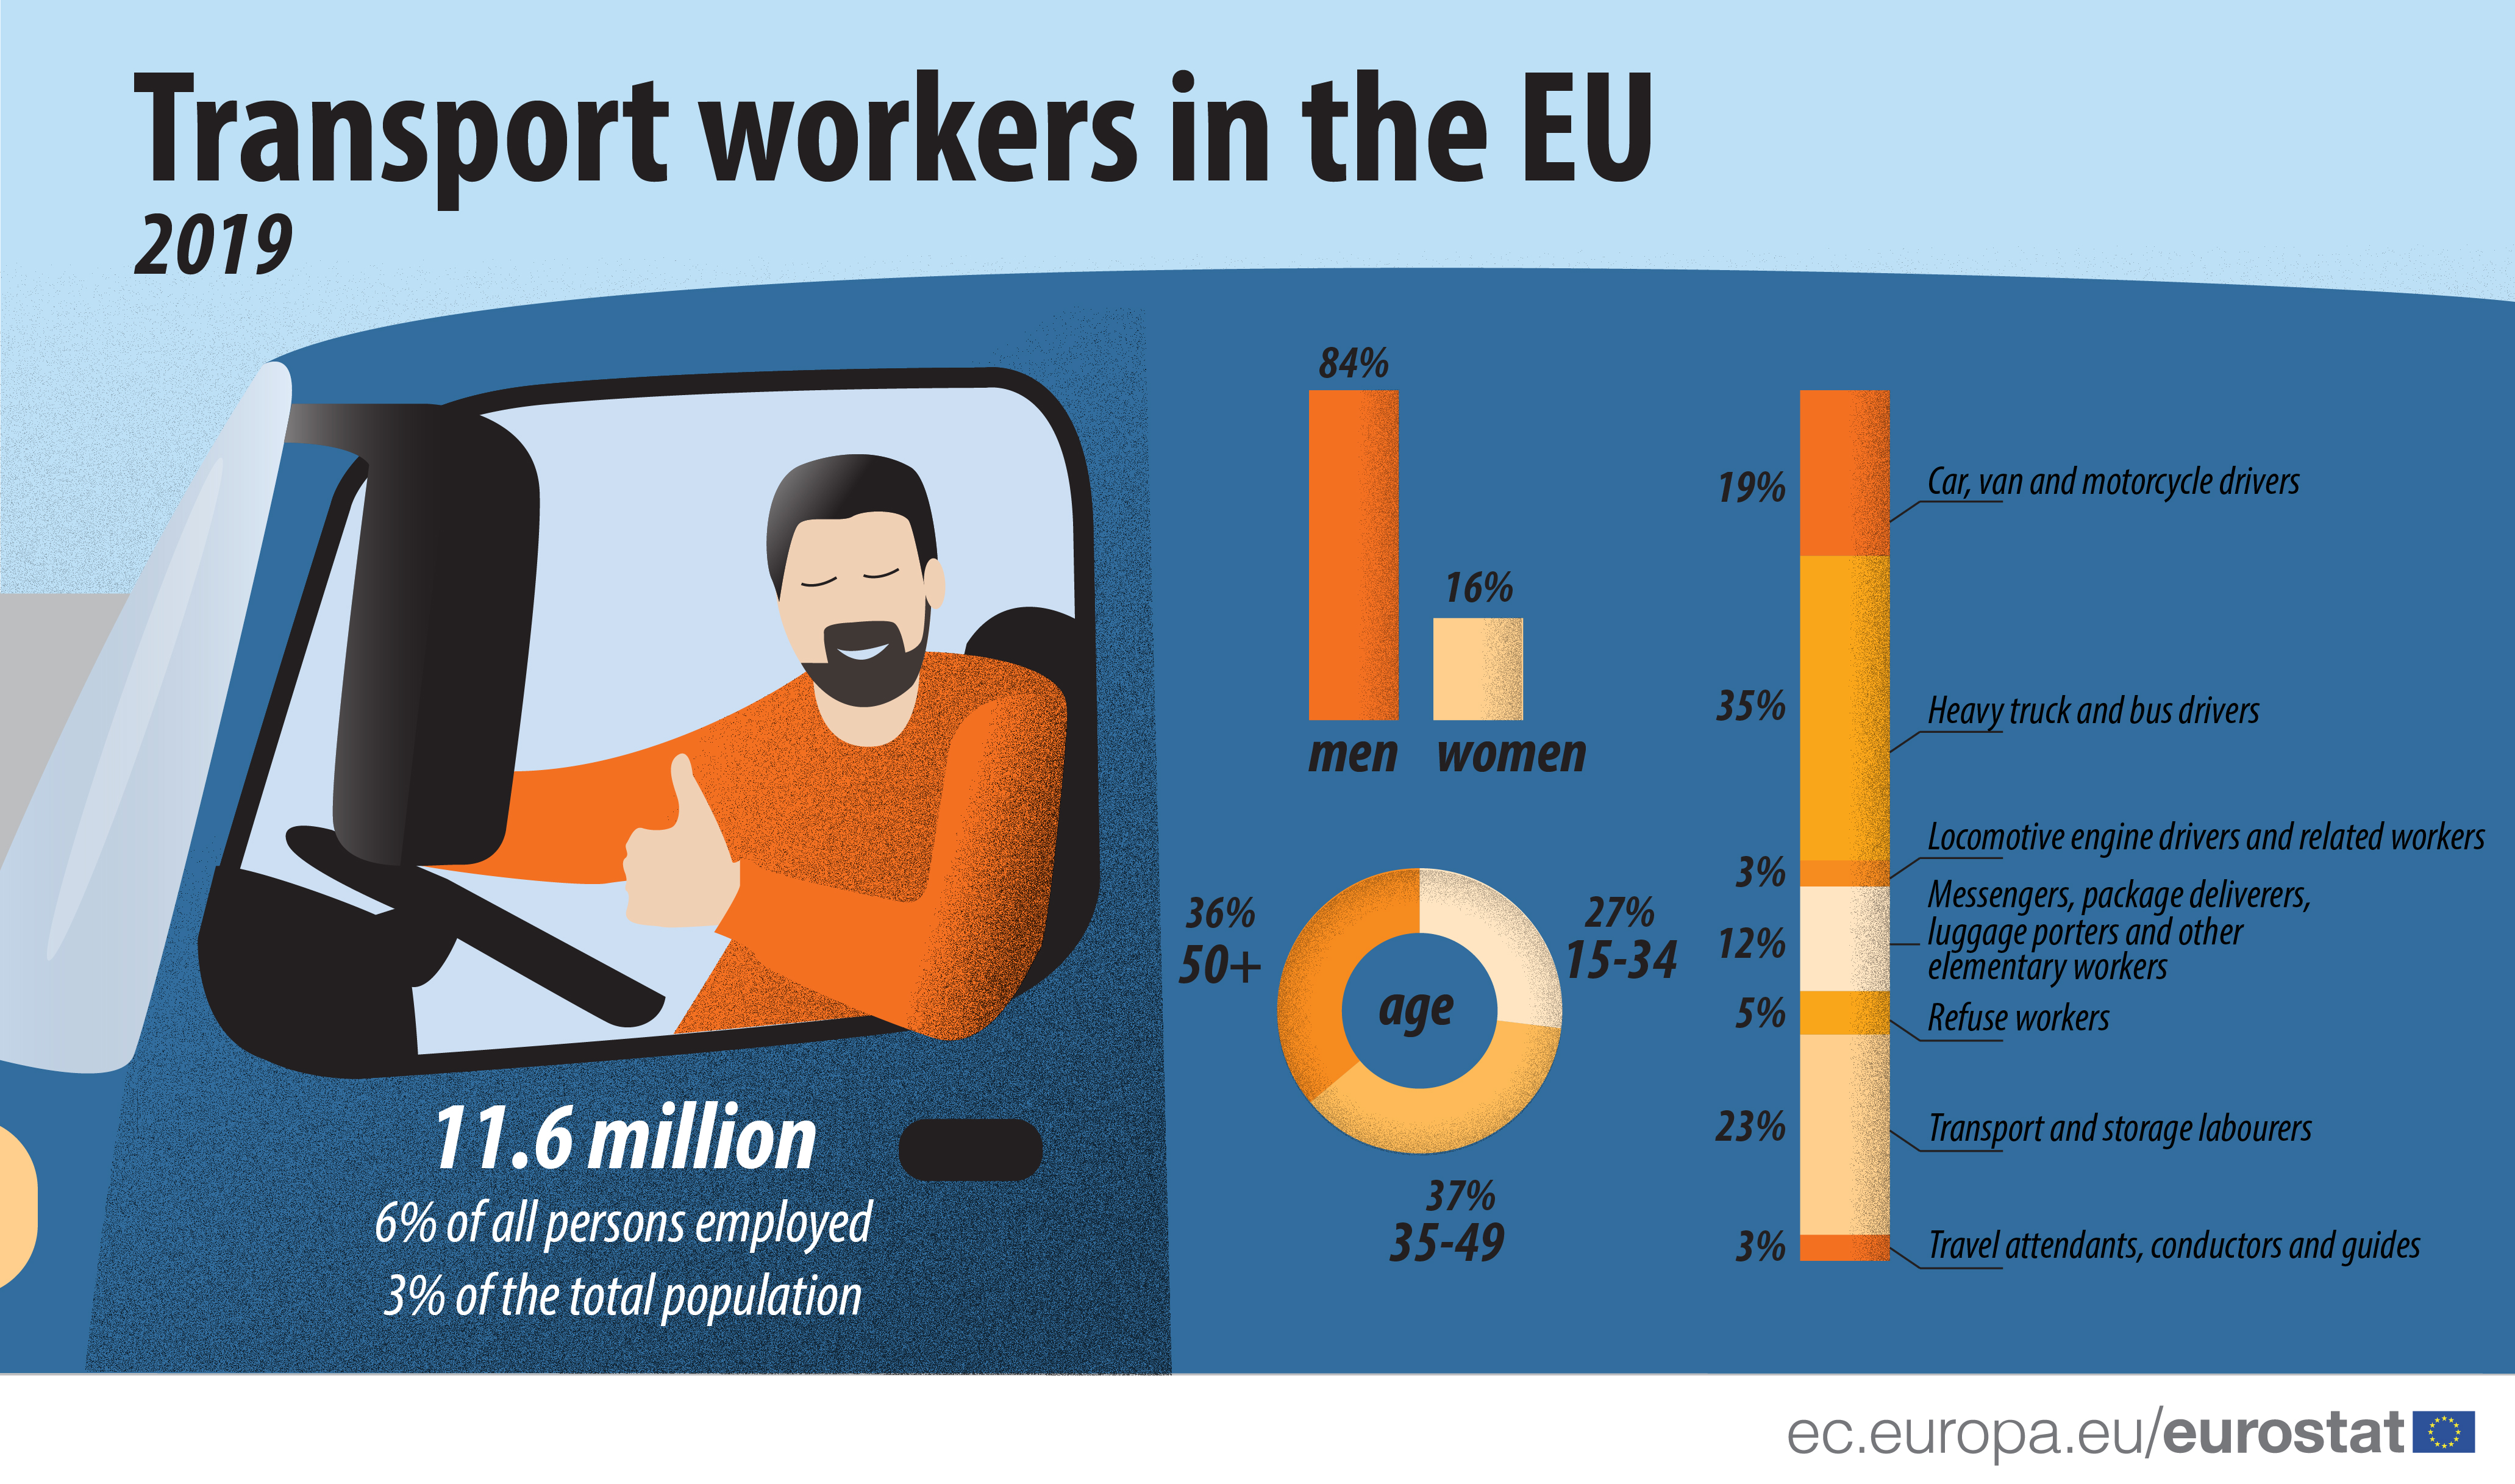 Transport workers in the EU 2019